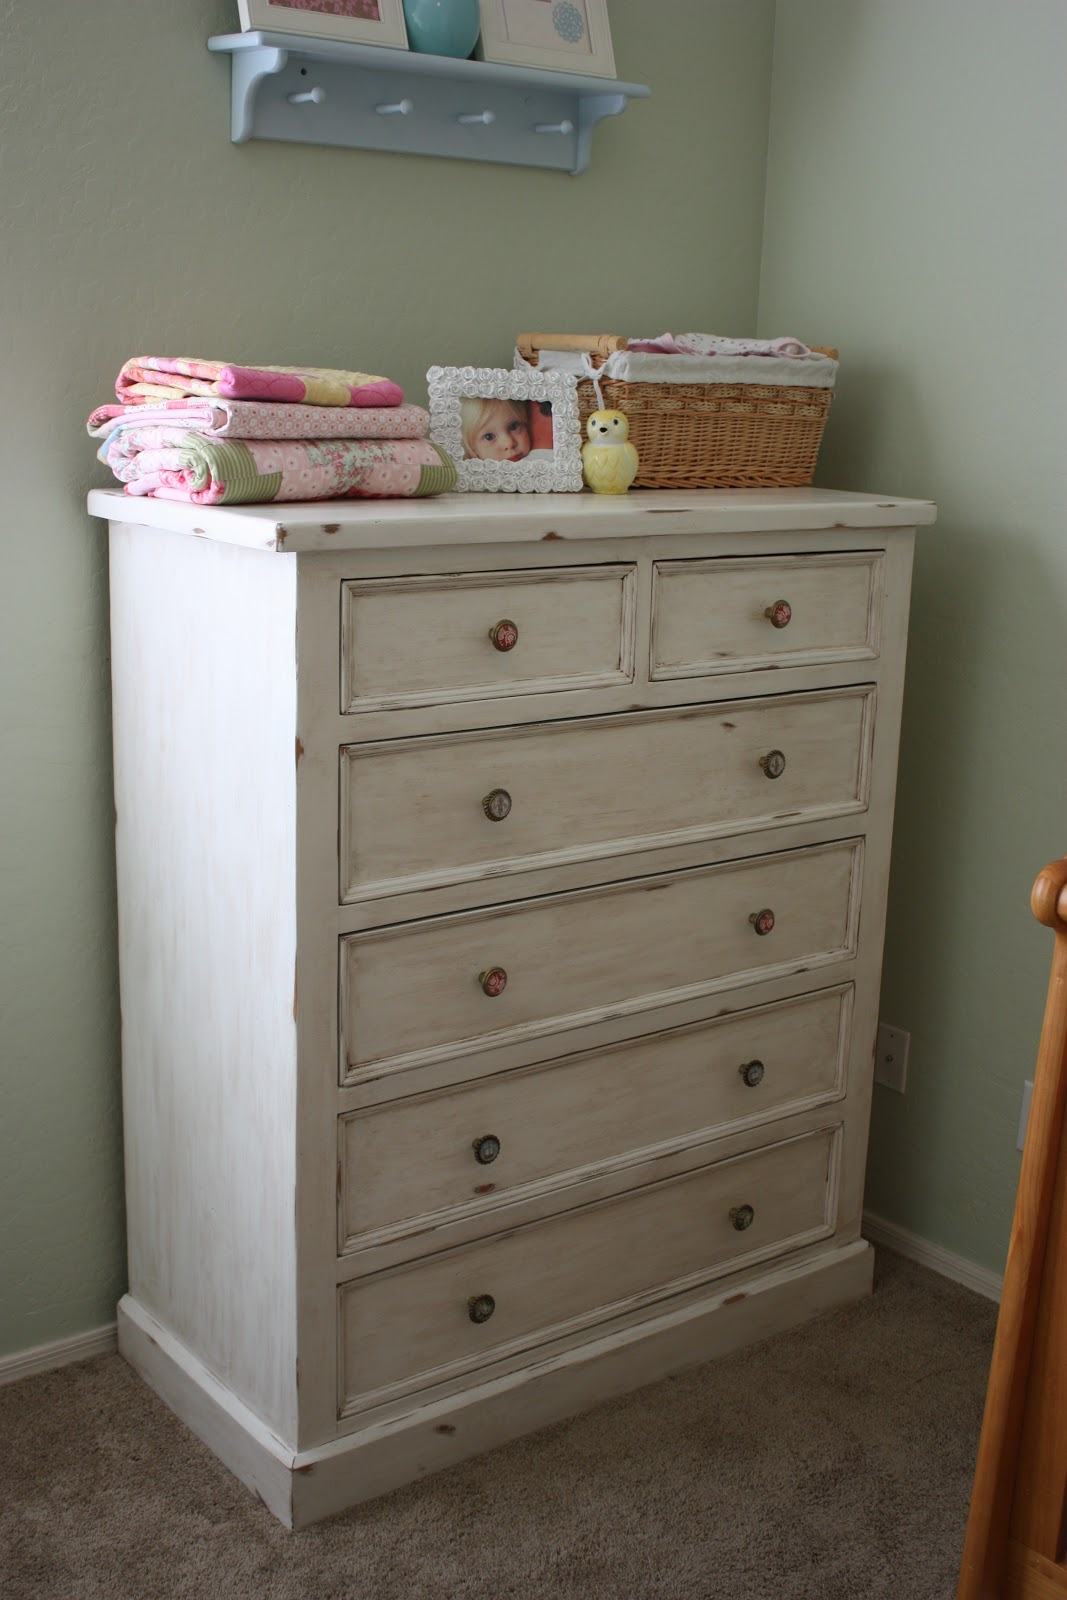 The Pretty Poppy How to refinish furniture in a vintage style